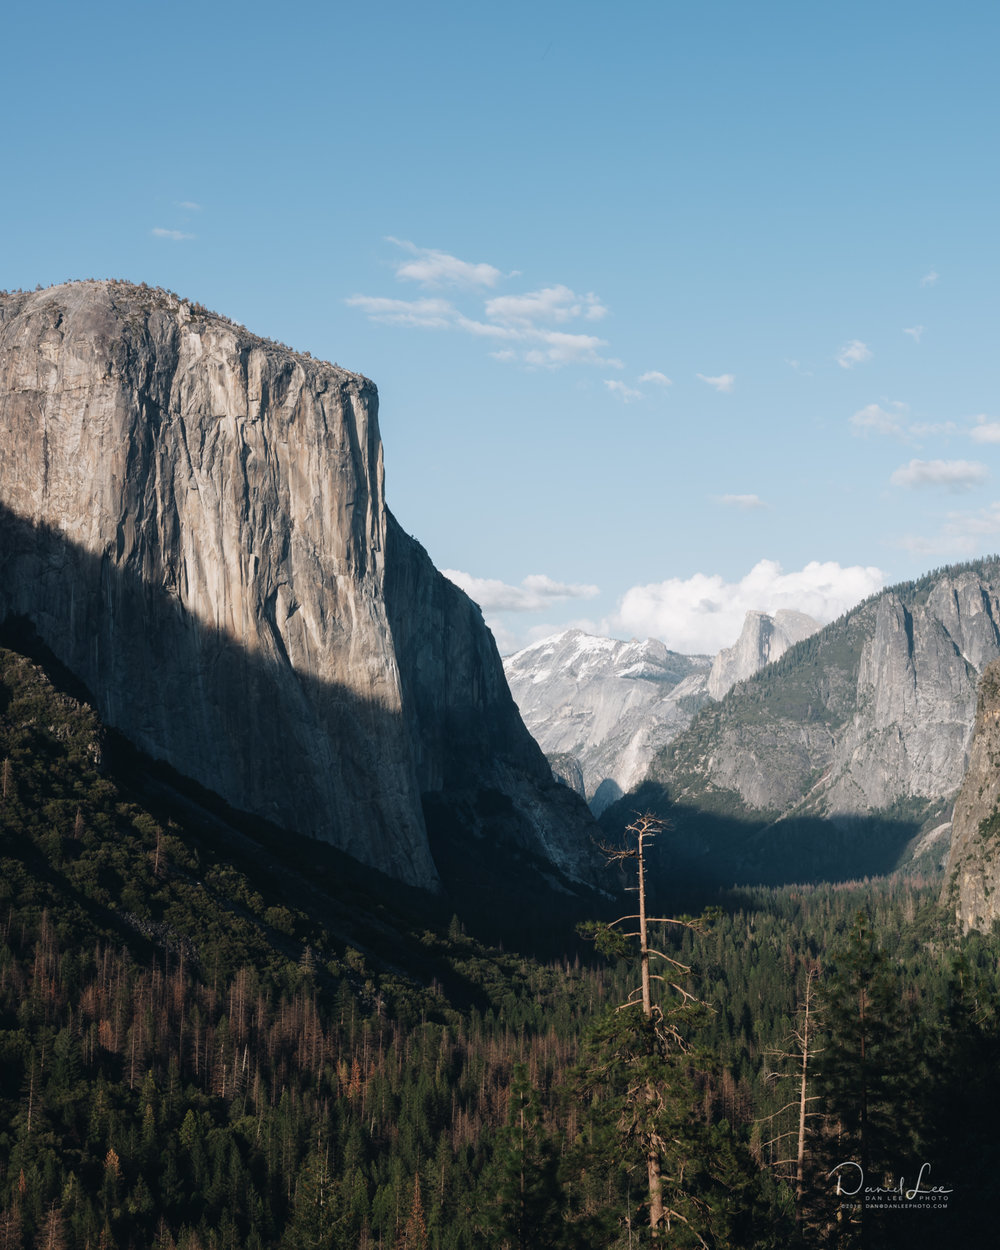 El Capitan in Yosemite National Park. For Pursuits with Enterprise. Photo by Daniel Lee.